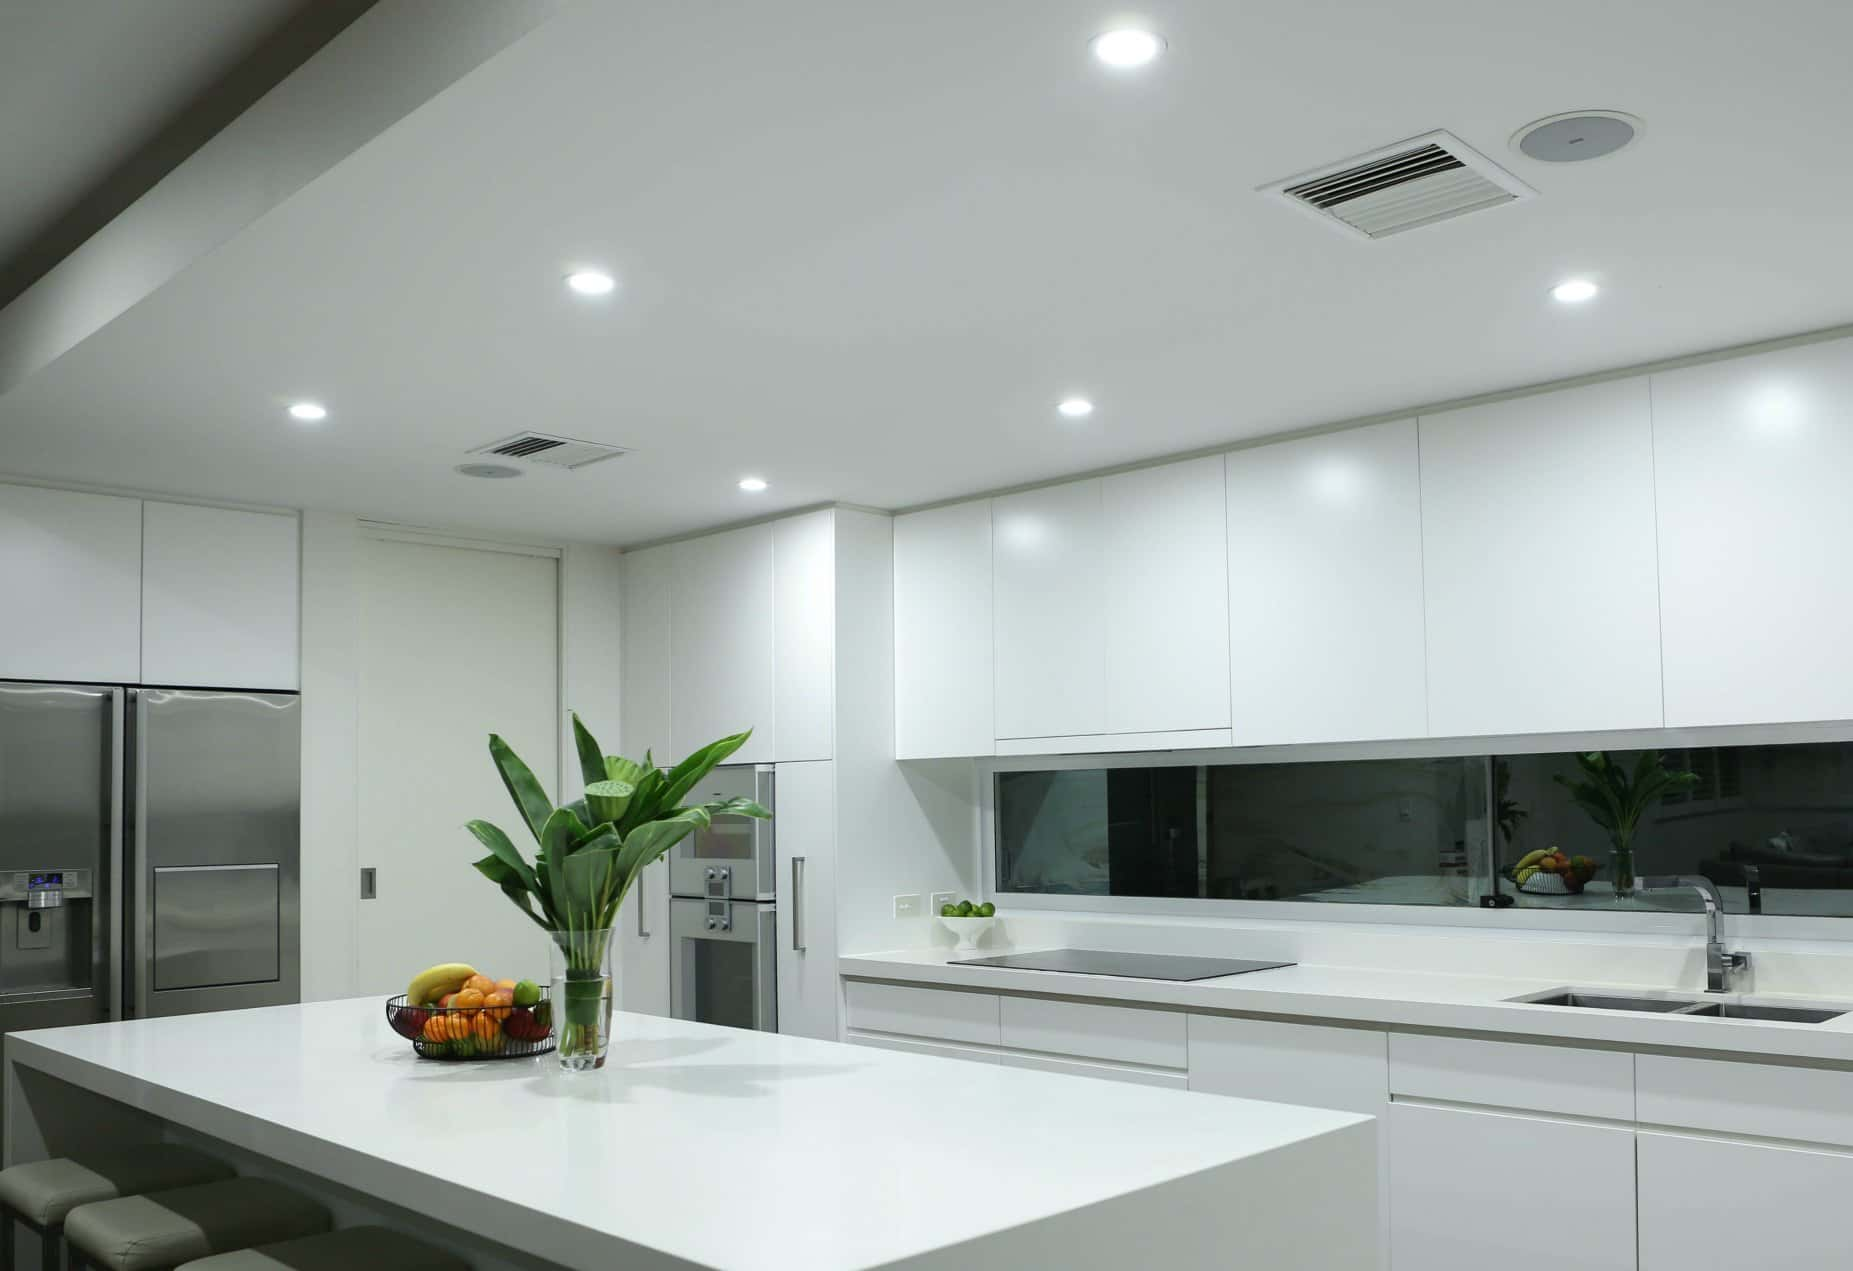 A Sydney home after an LED Upgrade